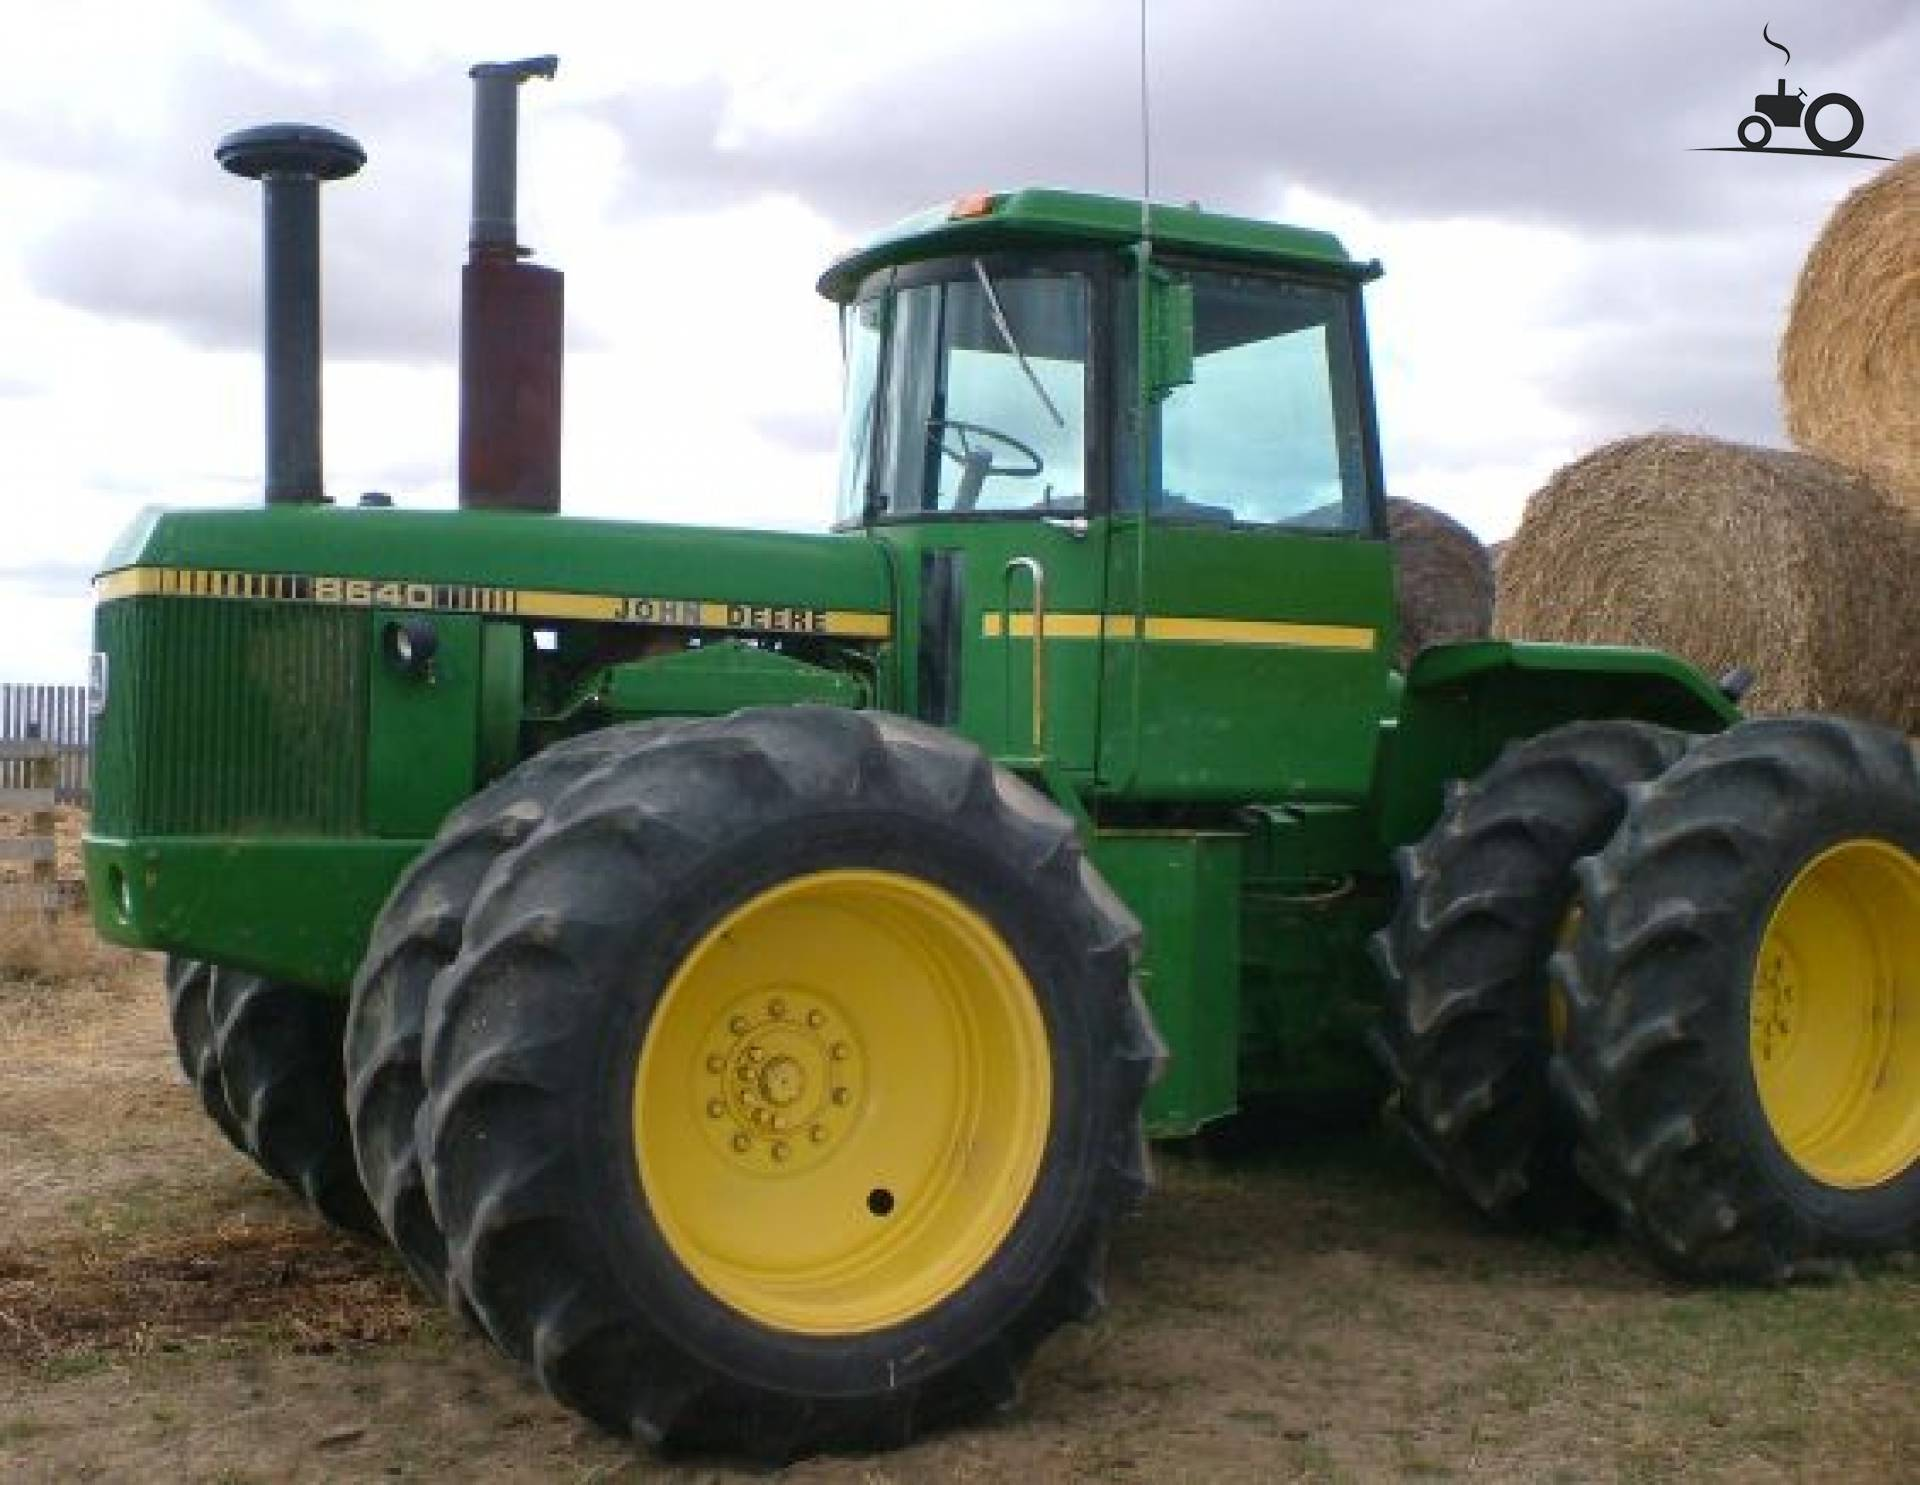 john deere 8640 - group picture, image by tag - keywordpictures.com